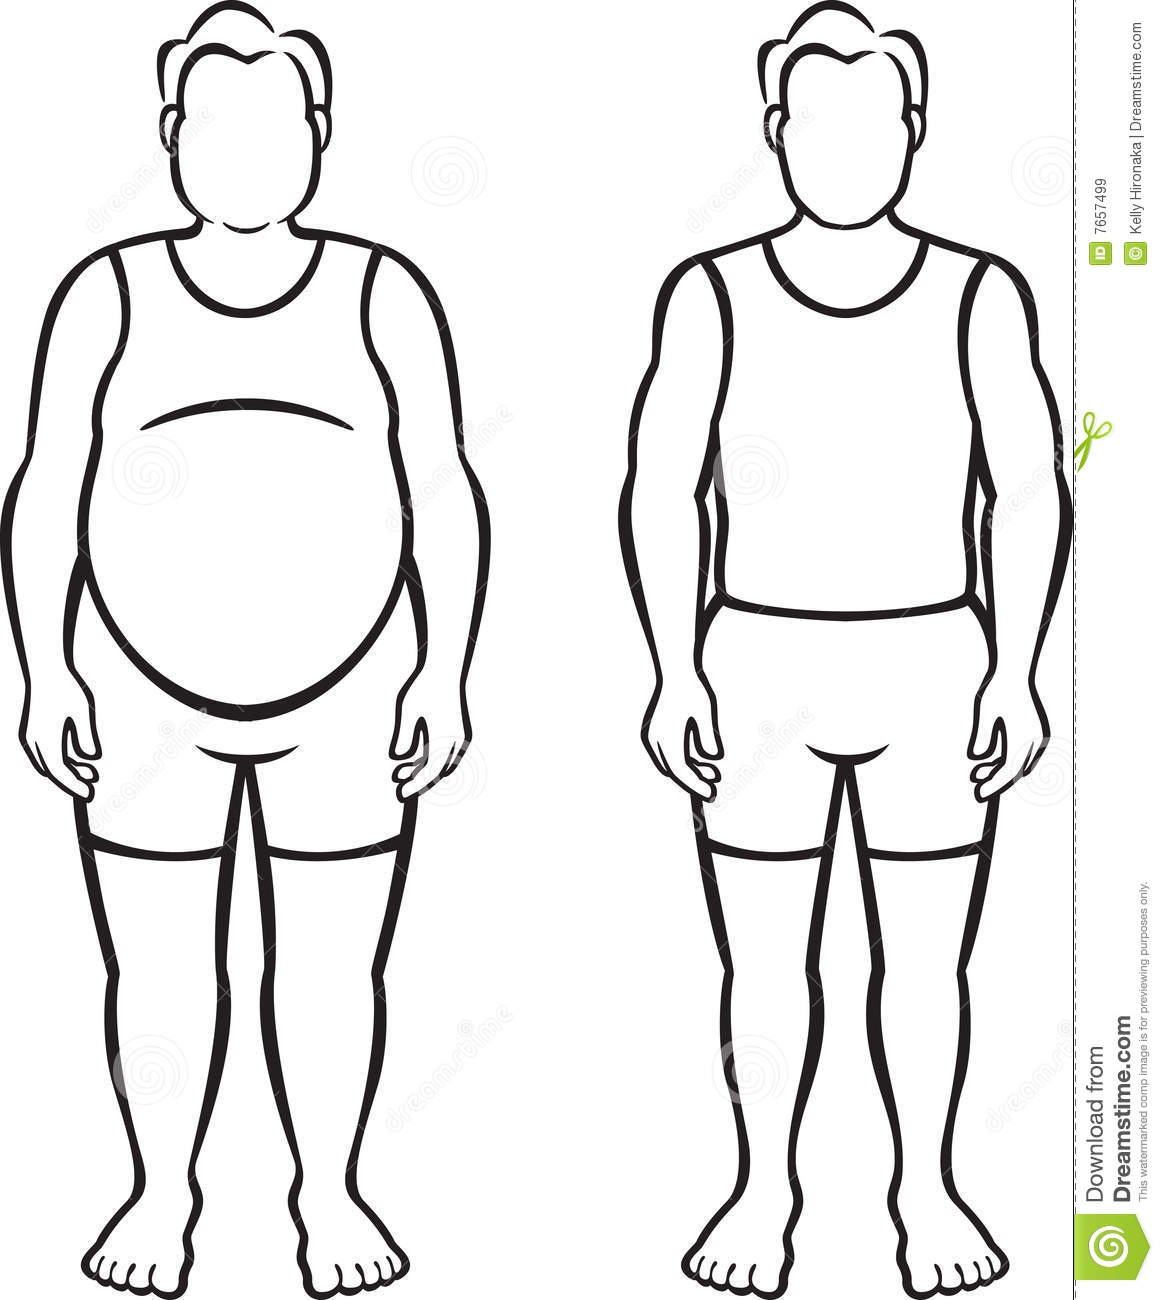 Fat vs thin clipart picture transparent download Thin and fat clipart - ClipartFest picture transparent download